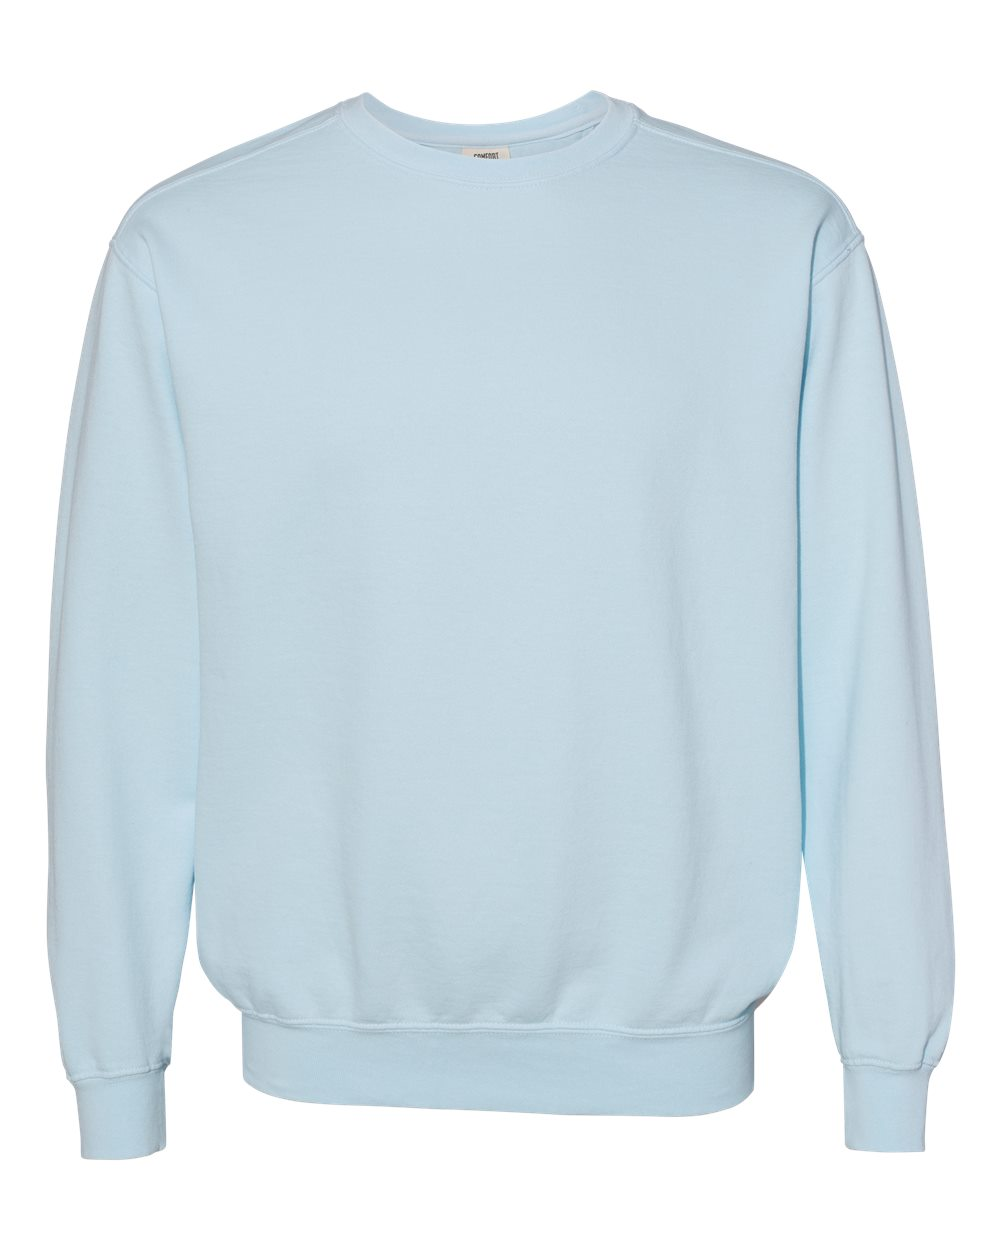 Comfort-Colors-Mens-Garment-Dyed-Ringspun-Crewneck-Sweatshirt-1566-up-to-3XL miniature 18